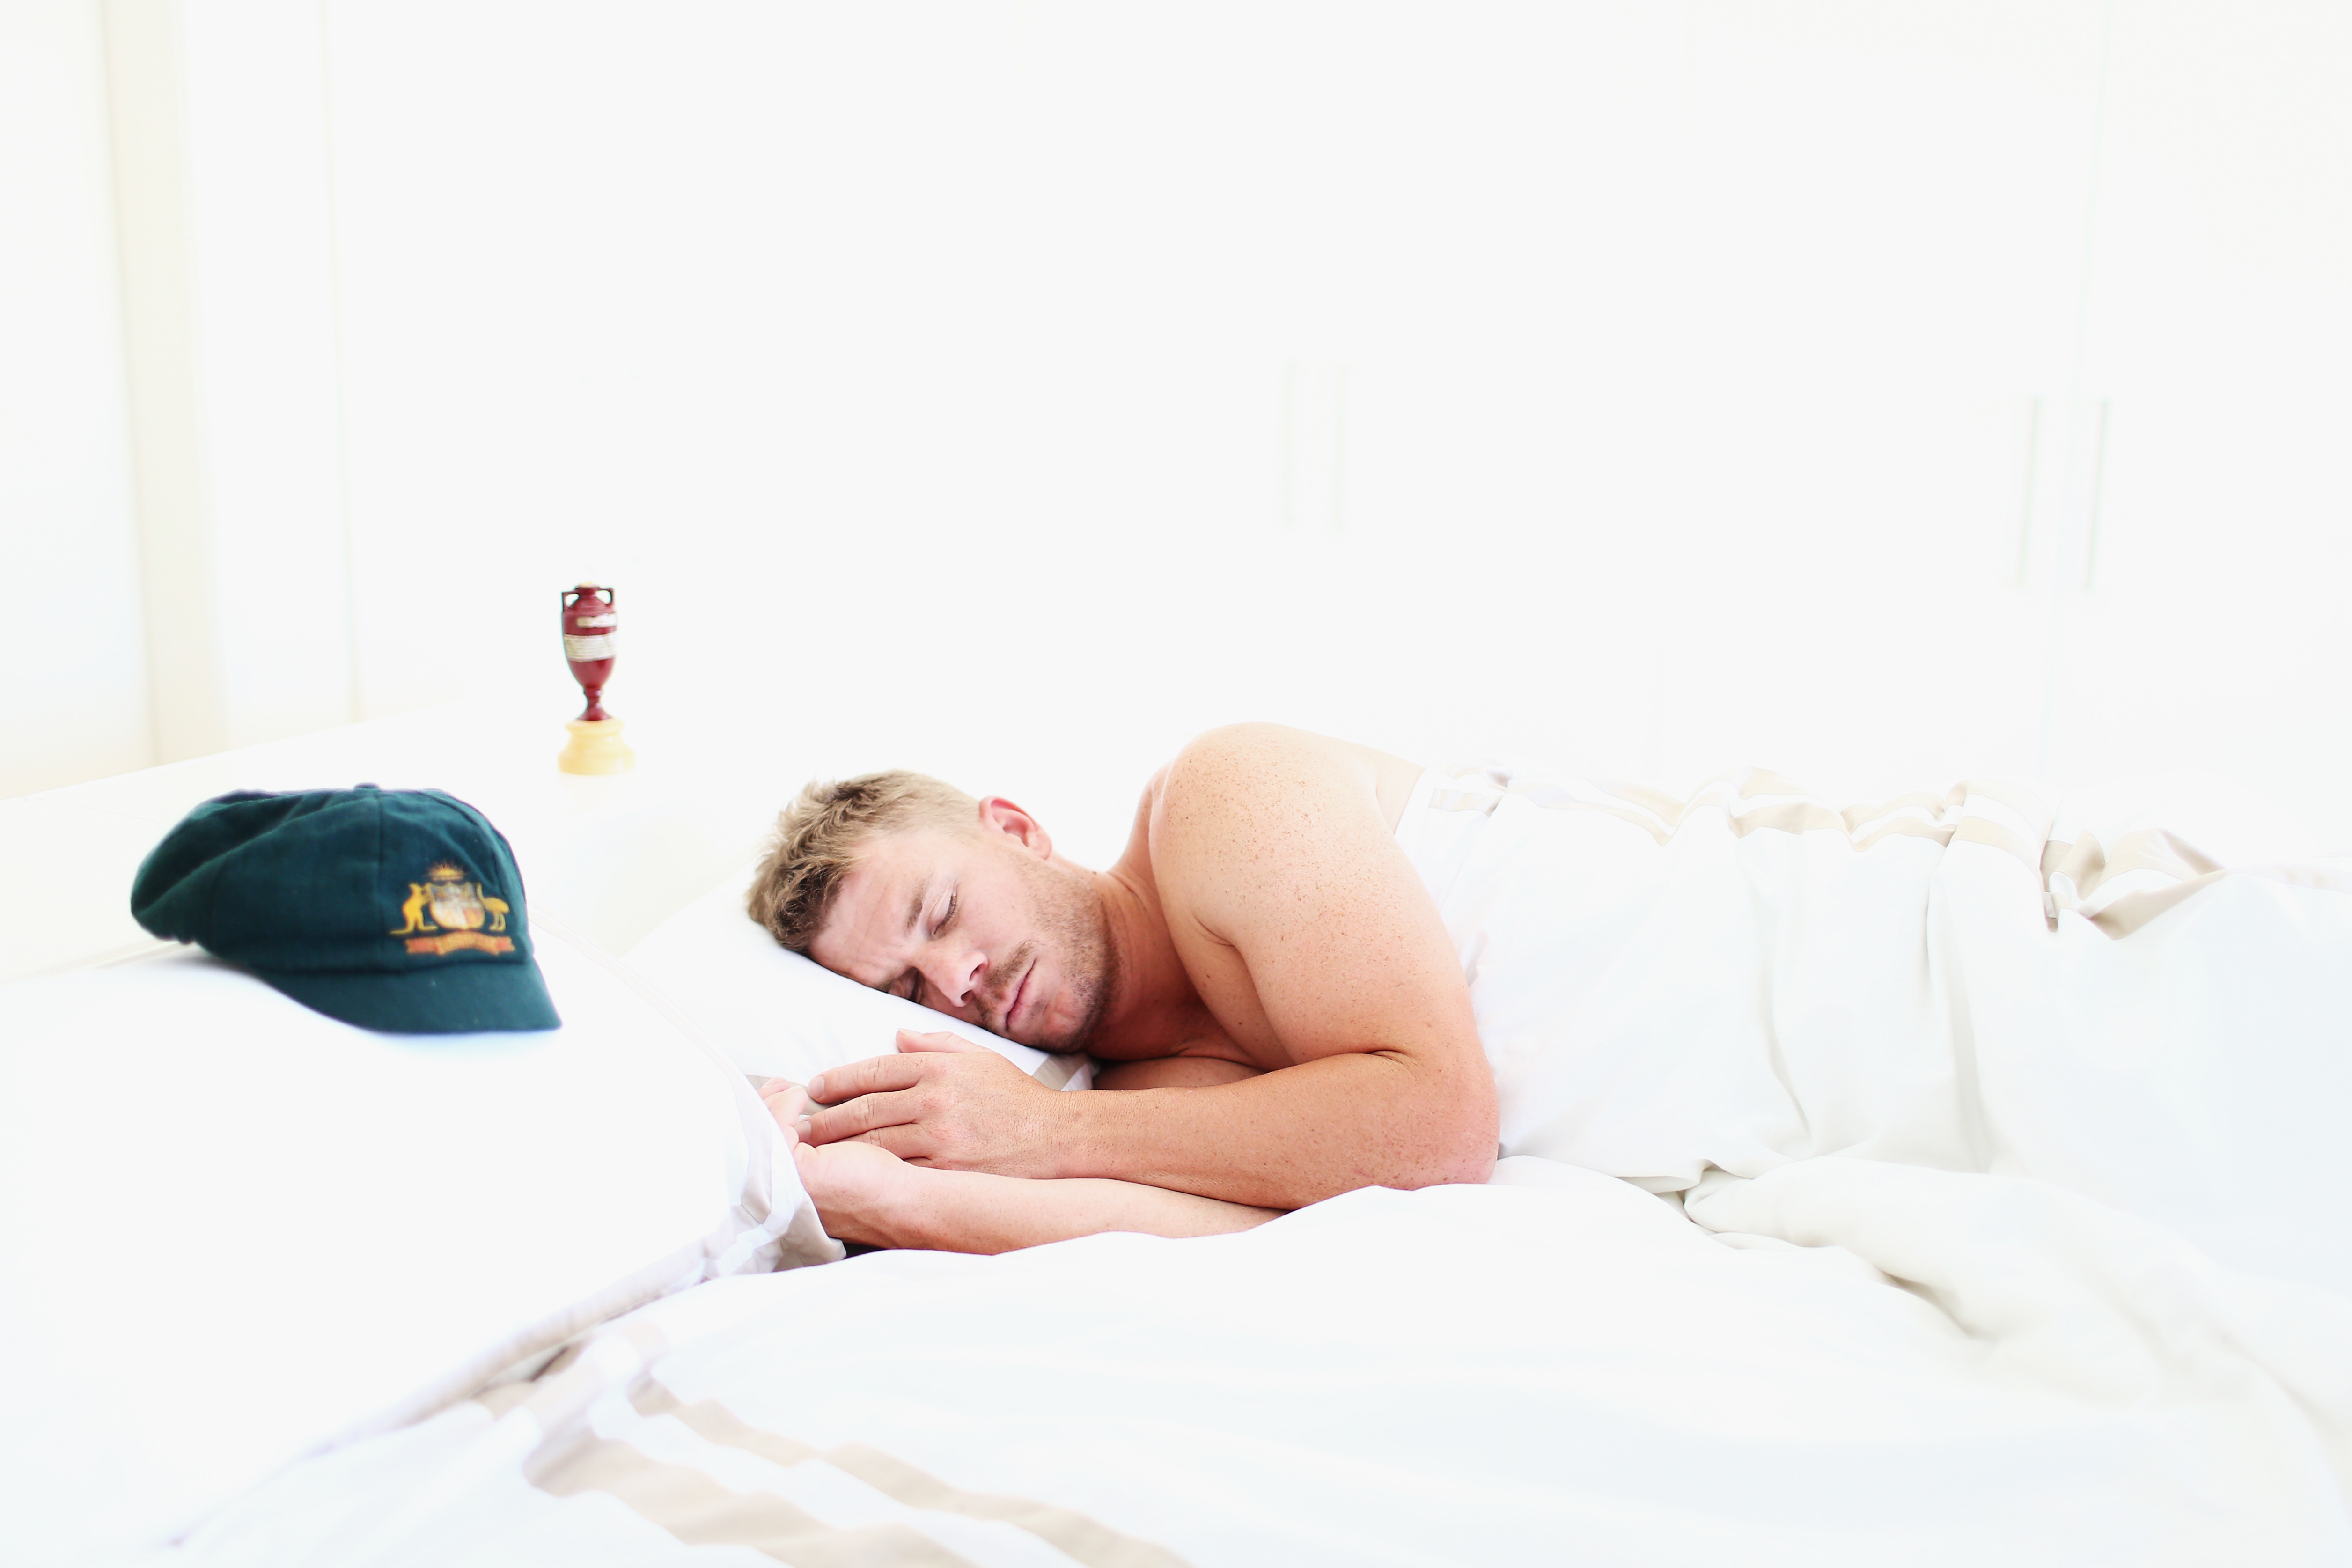 Australian Cricketer David Warner sleeps next to his Baggy Green Cap and a replica Ashes Urn at his home on January 6, 2014 in Sydney, Australia. Australia yesterday claimed a five-nil Ashes series victory over England in which Warner was leading run scorer.